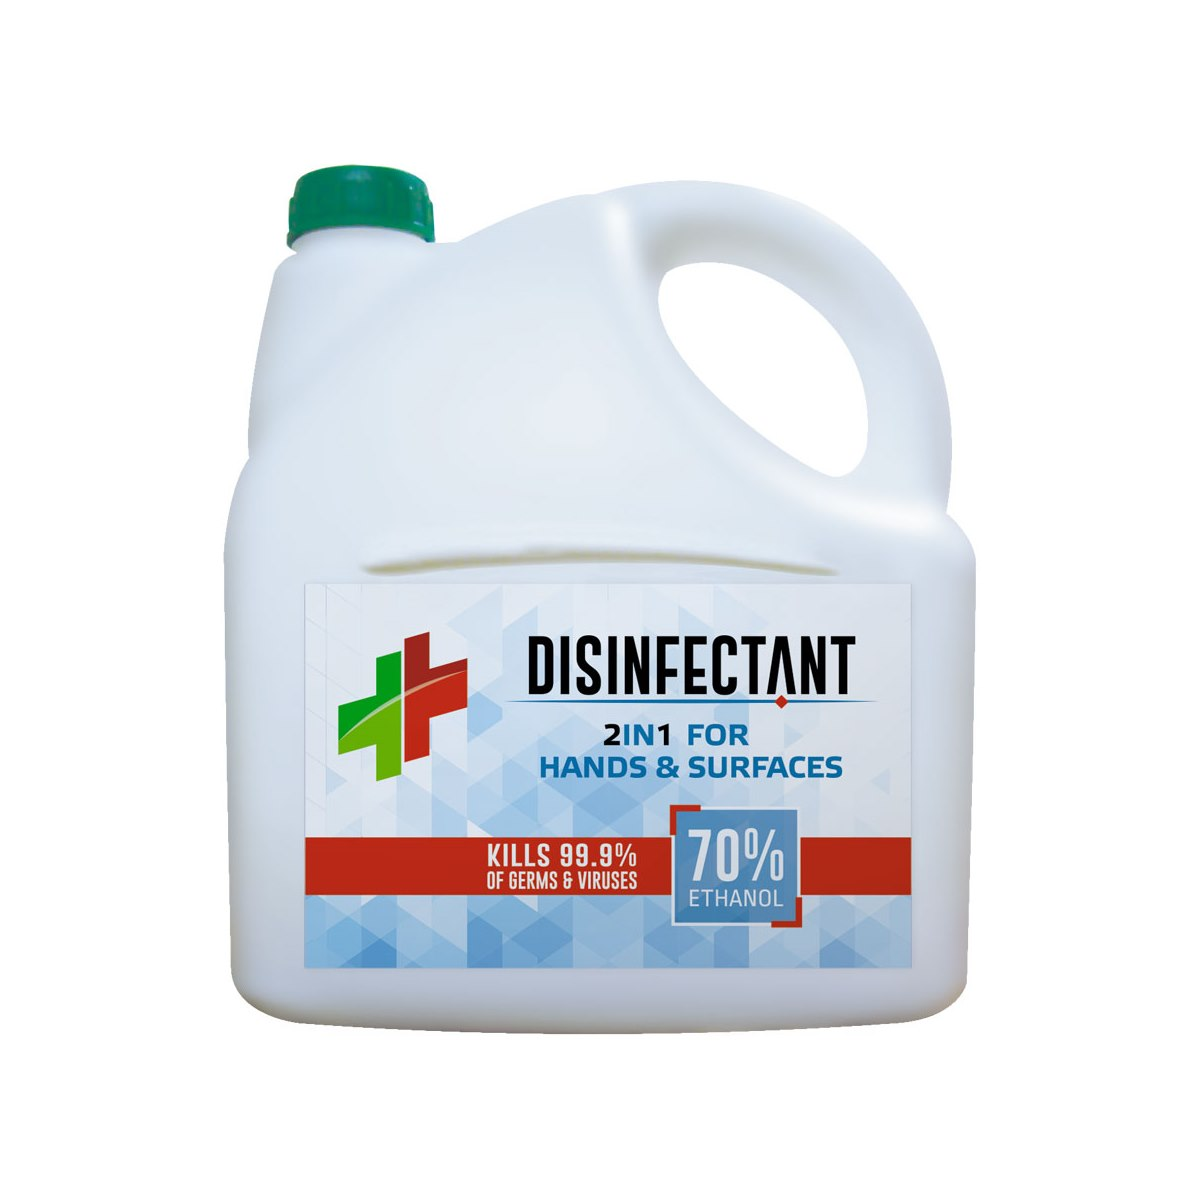 Tri-Bio 2 in 1 Disinfectant for Hands and Hard Surfaces. Refill 3 Litre